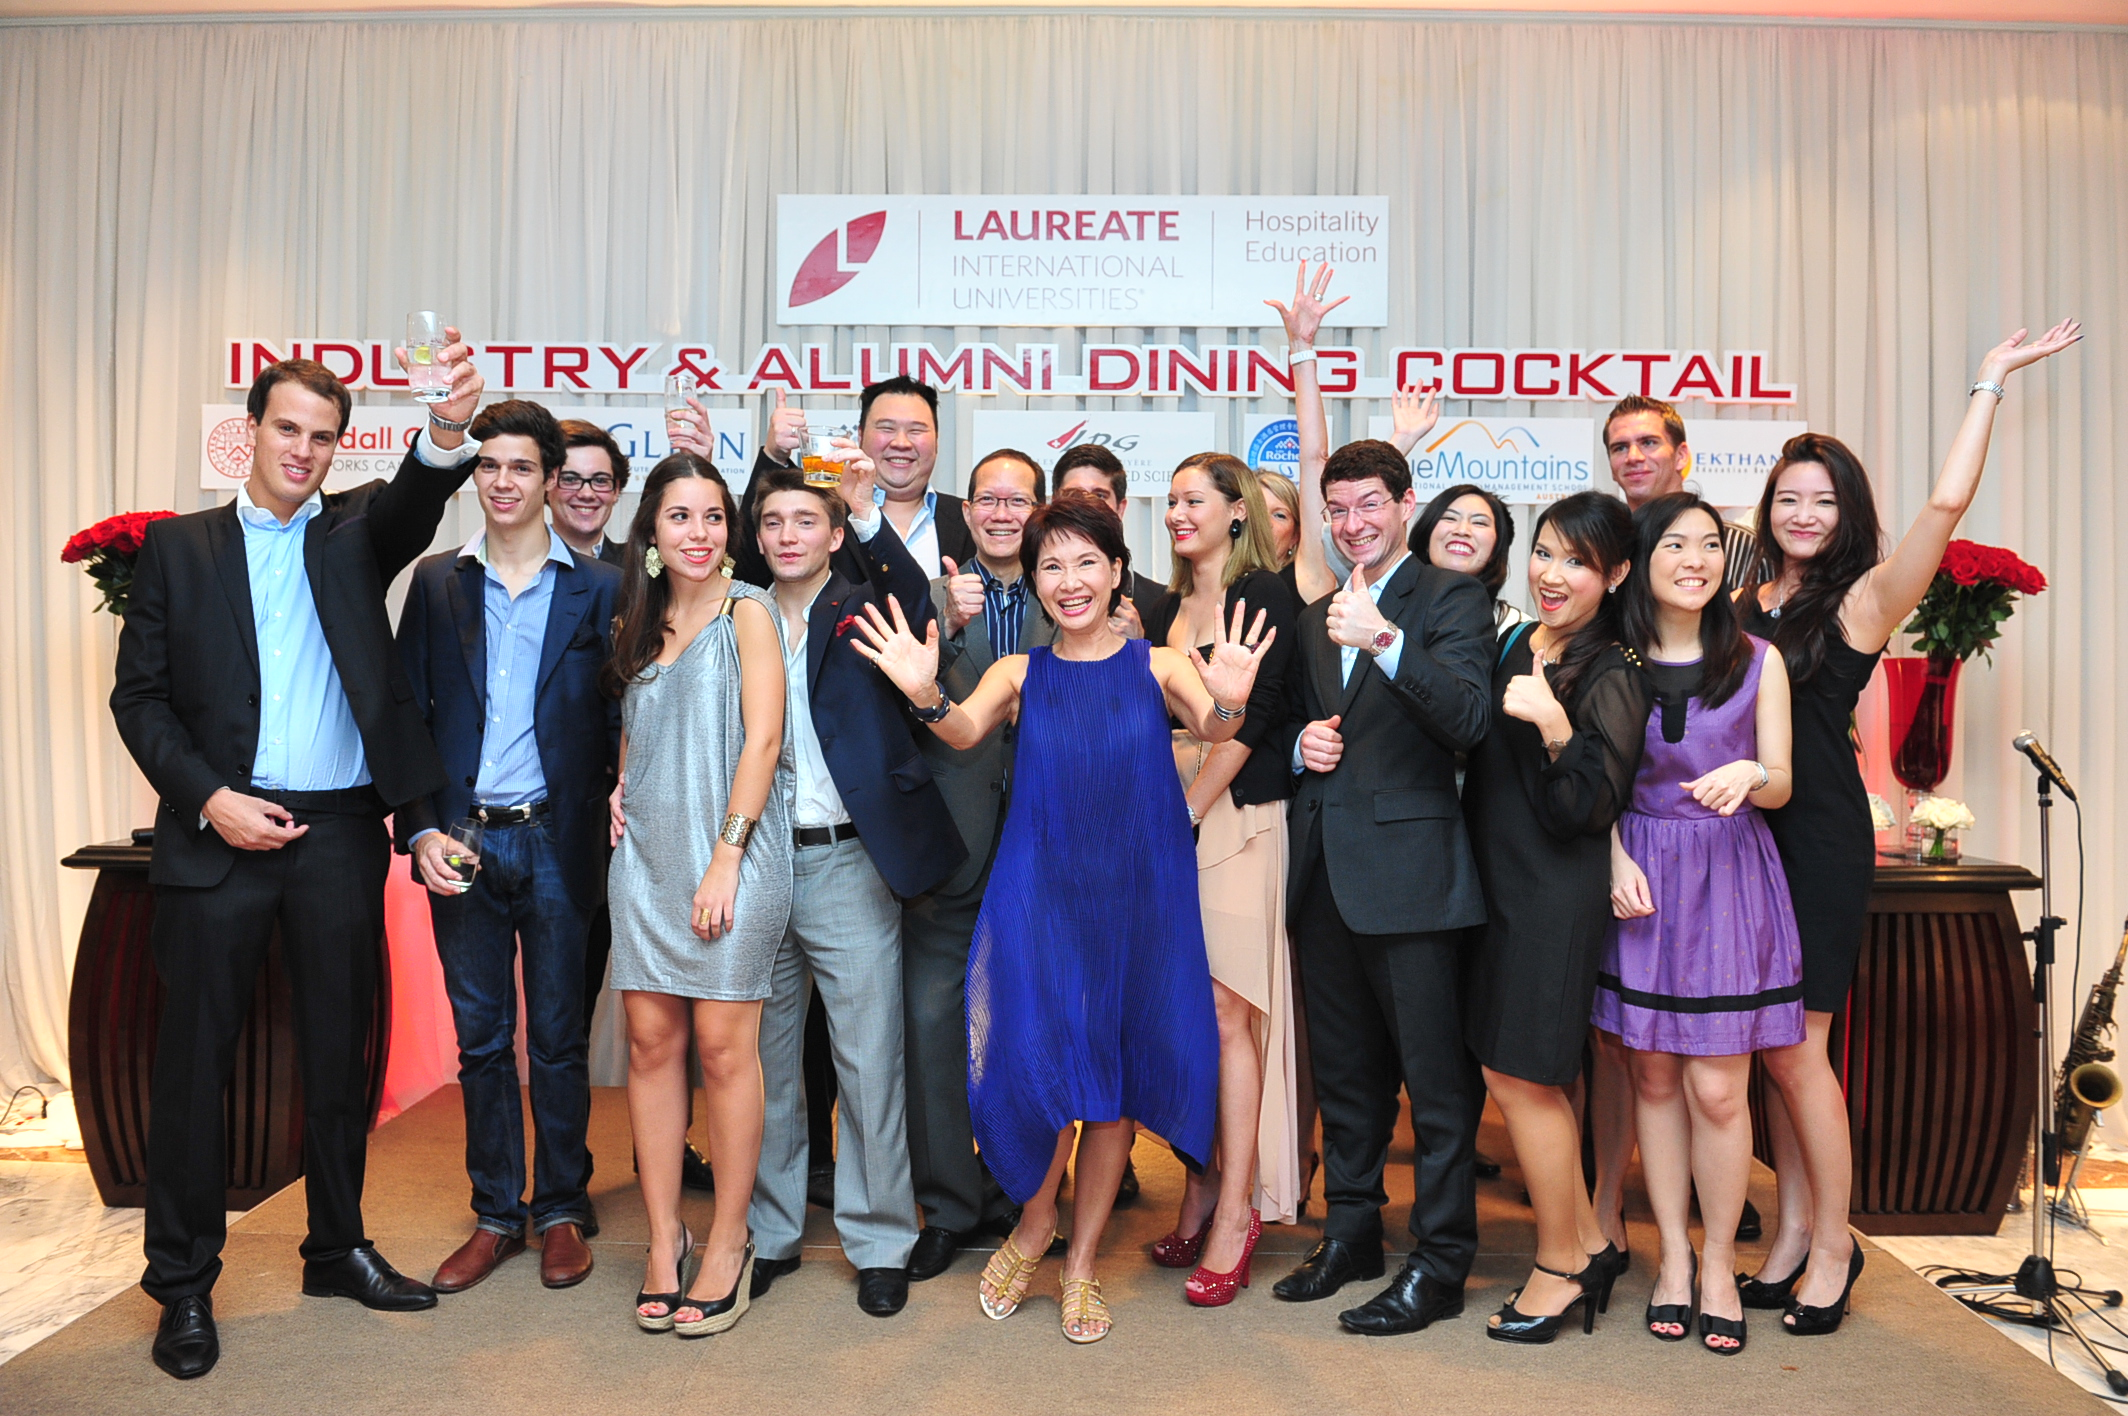 Glion Alumni - Dining Cocktail